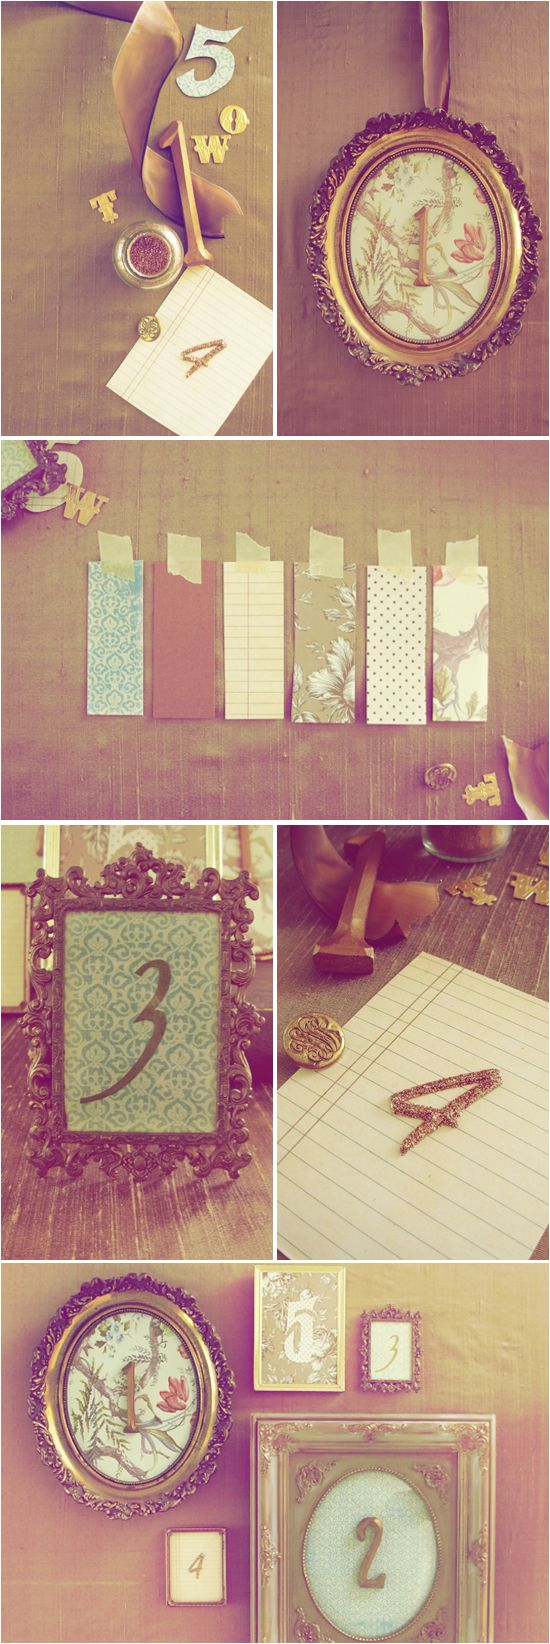 Table numbers proyectos que intentar pinterest framed table